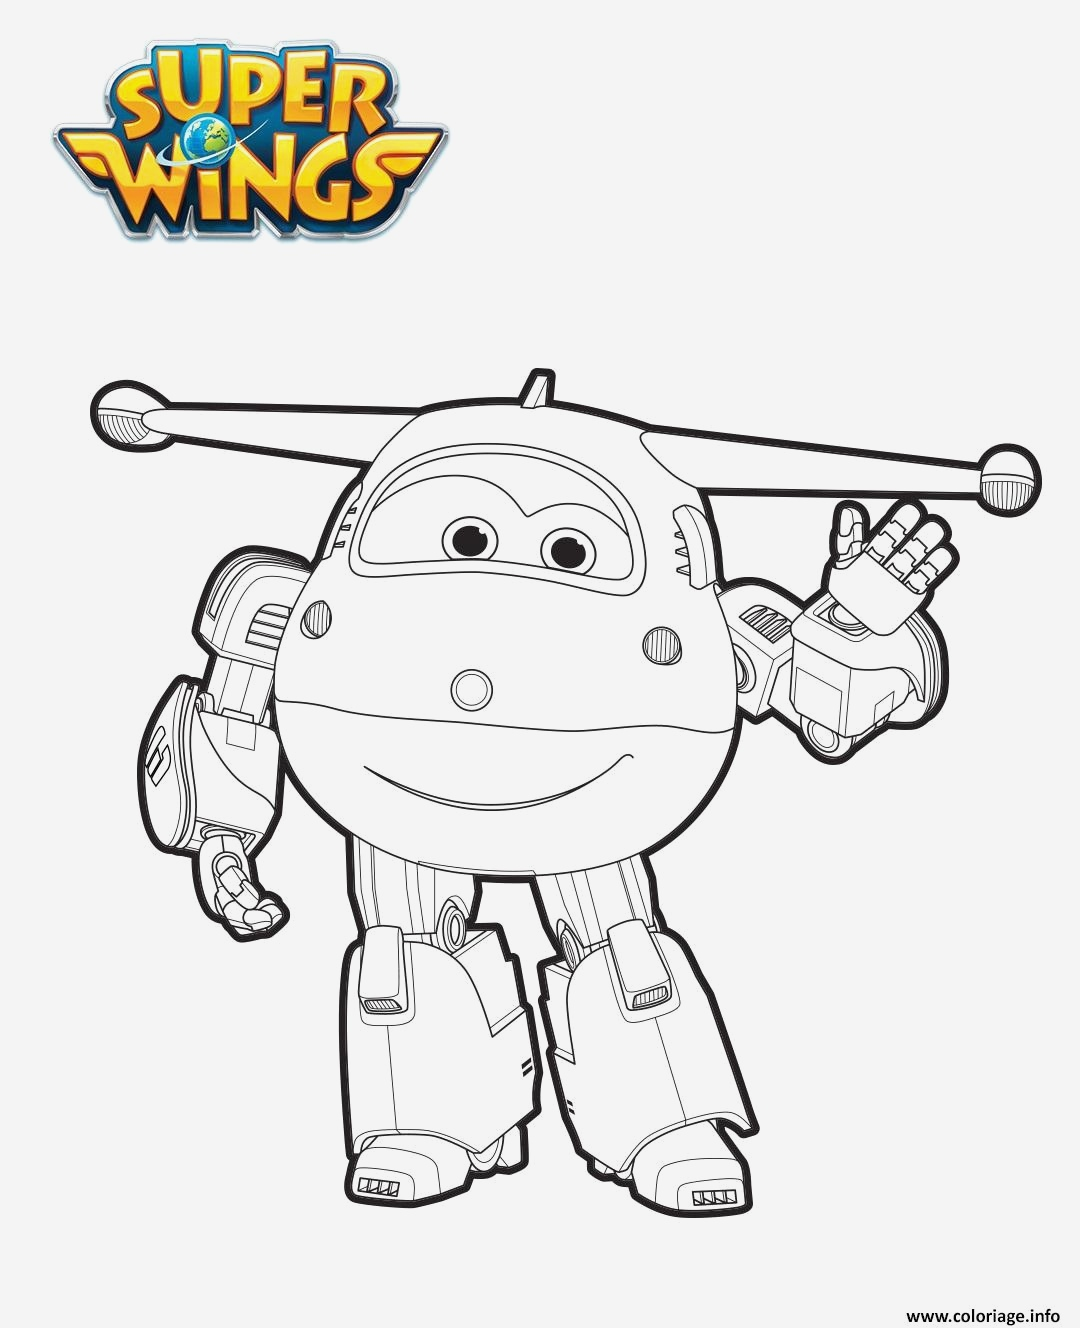 Coloriage Super Wings A Imprimer Gratuit Inspirational Coloriage Jett En Mode Robot2 Jecolorie